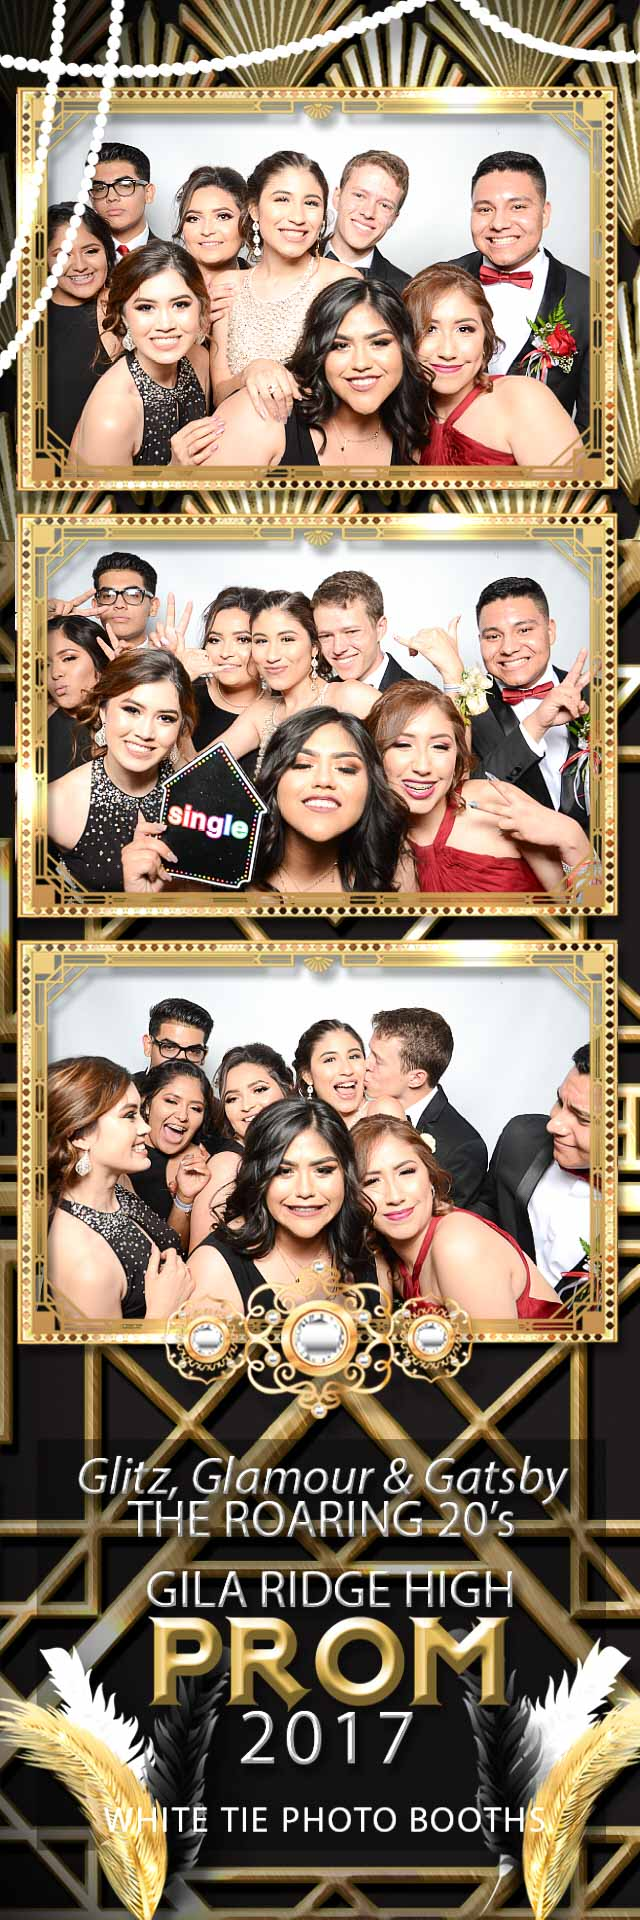 Gila Ridge High School Prom Photo Booth At AZWestern College